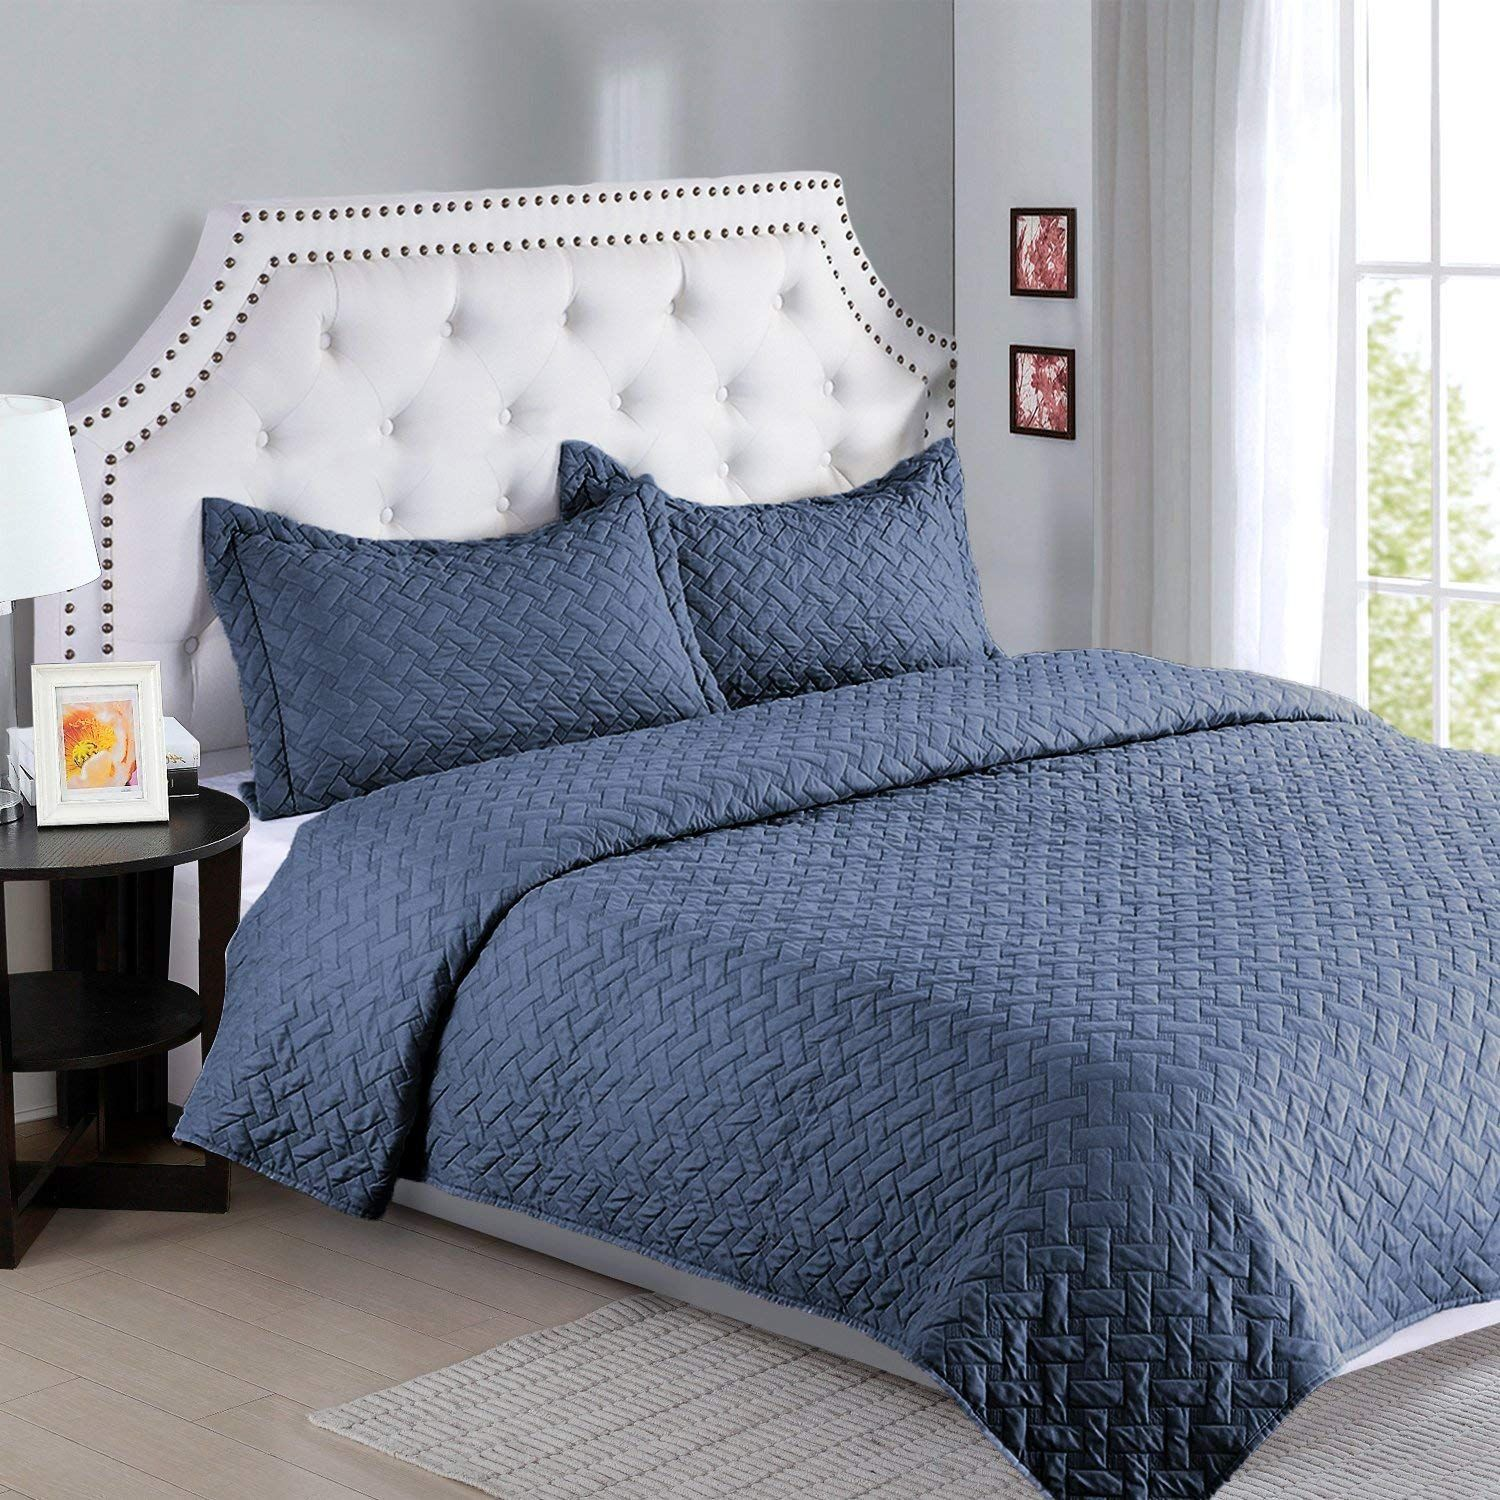 Best Blue Bedding and Blue Sheets Navy bedding, Navy